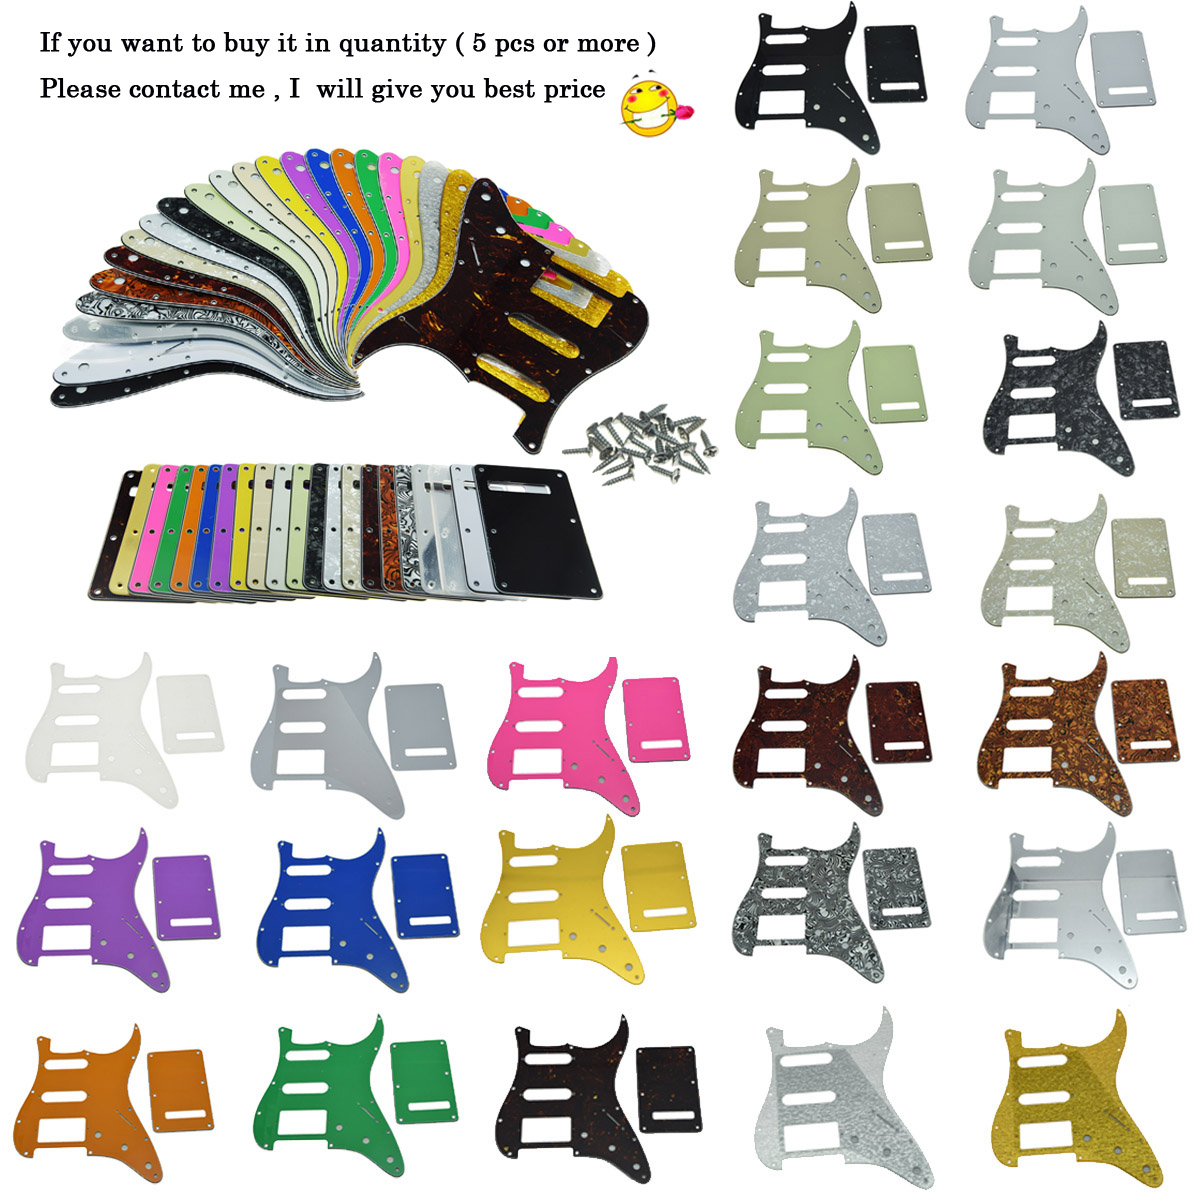 Dopro ST Style HSS Guitar Pickguard Scratch Plate,Trem Cover, Screws Various colors musiclily 3ply pvc outline pickguard for fenderstrat st guitar custom